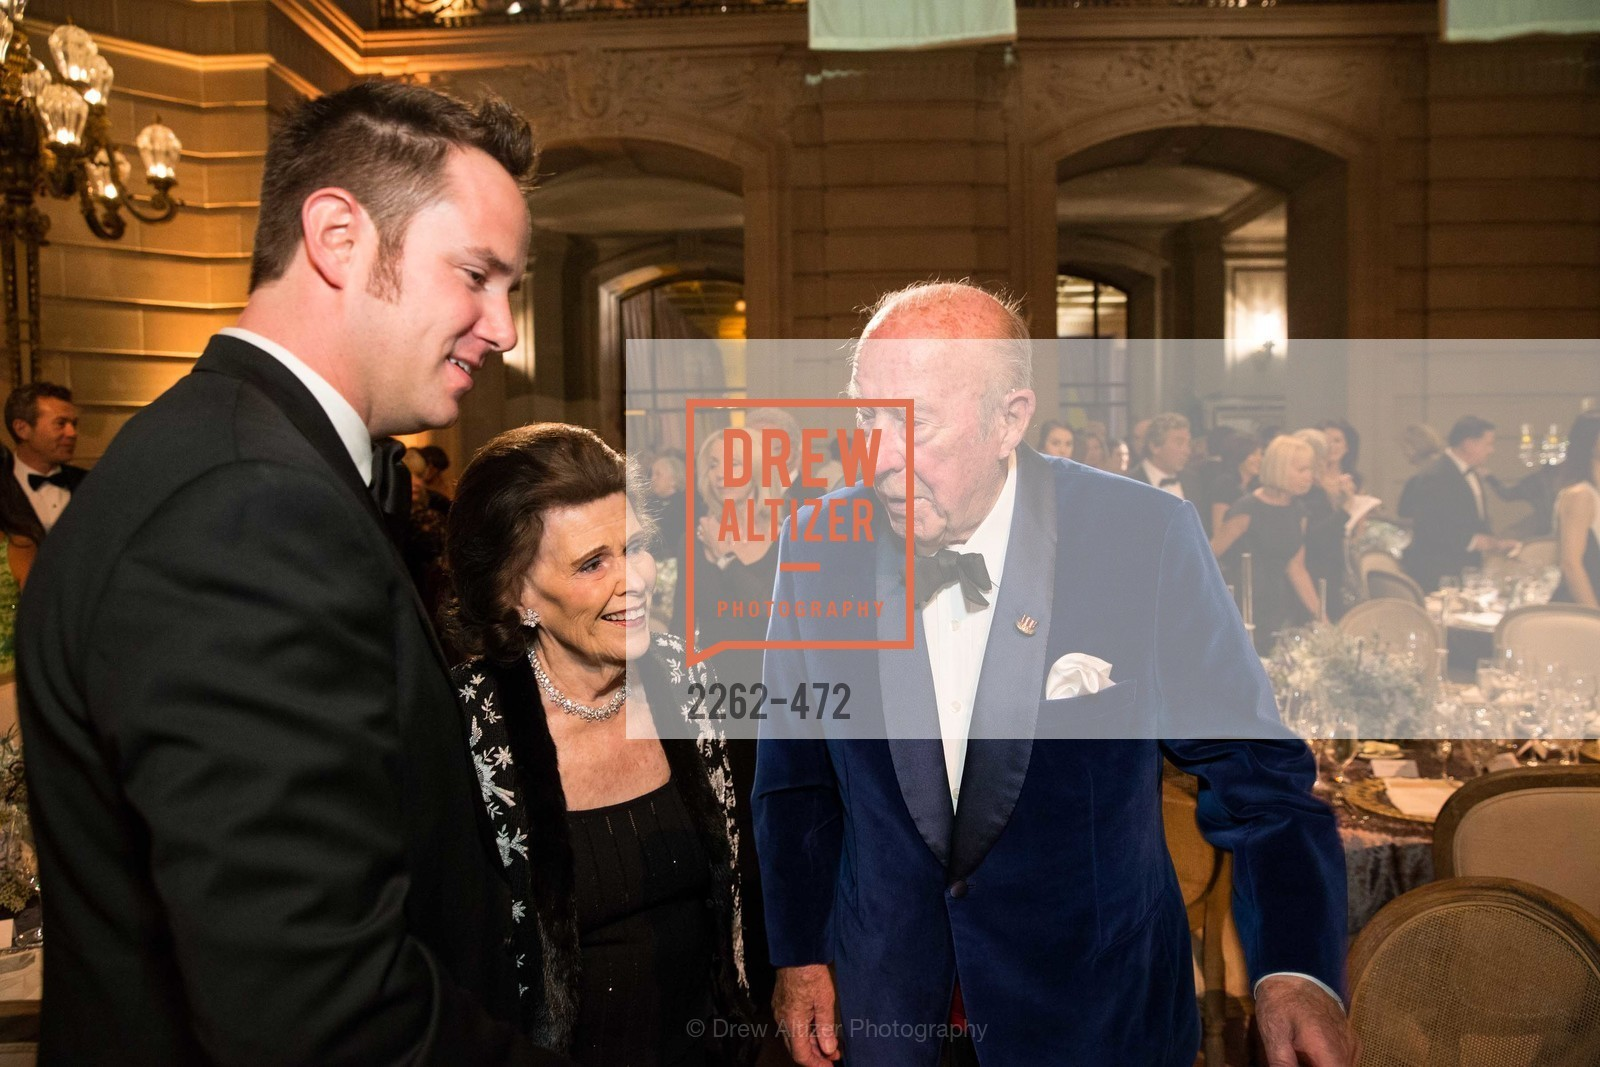 Drew Weyerhaeuser, Lucy Jewett, George Shultz, SAN FRANCISCO BALLET Opening Night Gala: PHENOMENAL - Intermission & Dinner, US. SF City Hall, January 22nd, 2014,Drew Altizer, Drew Altizer Photography, full-service event agency, private events, San Francisco photographer, photographer California